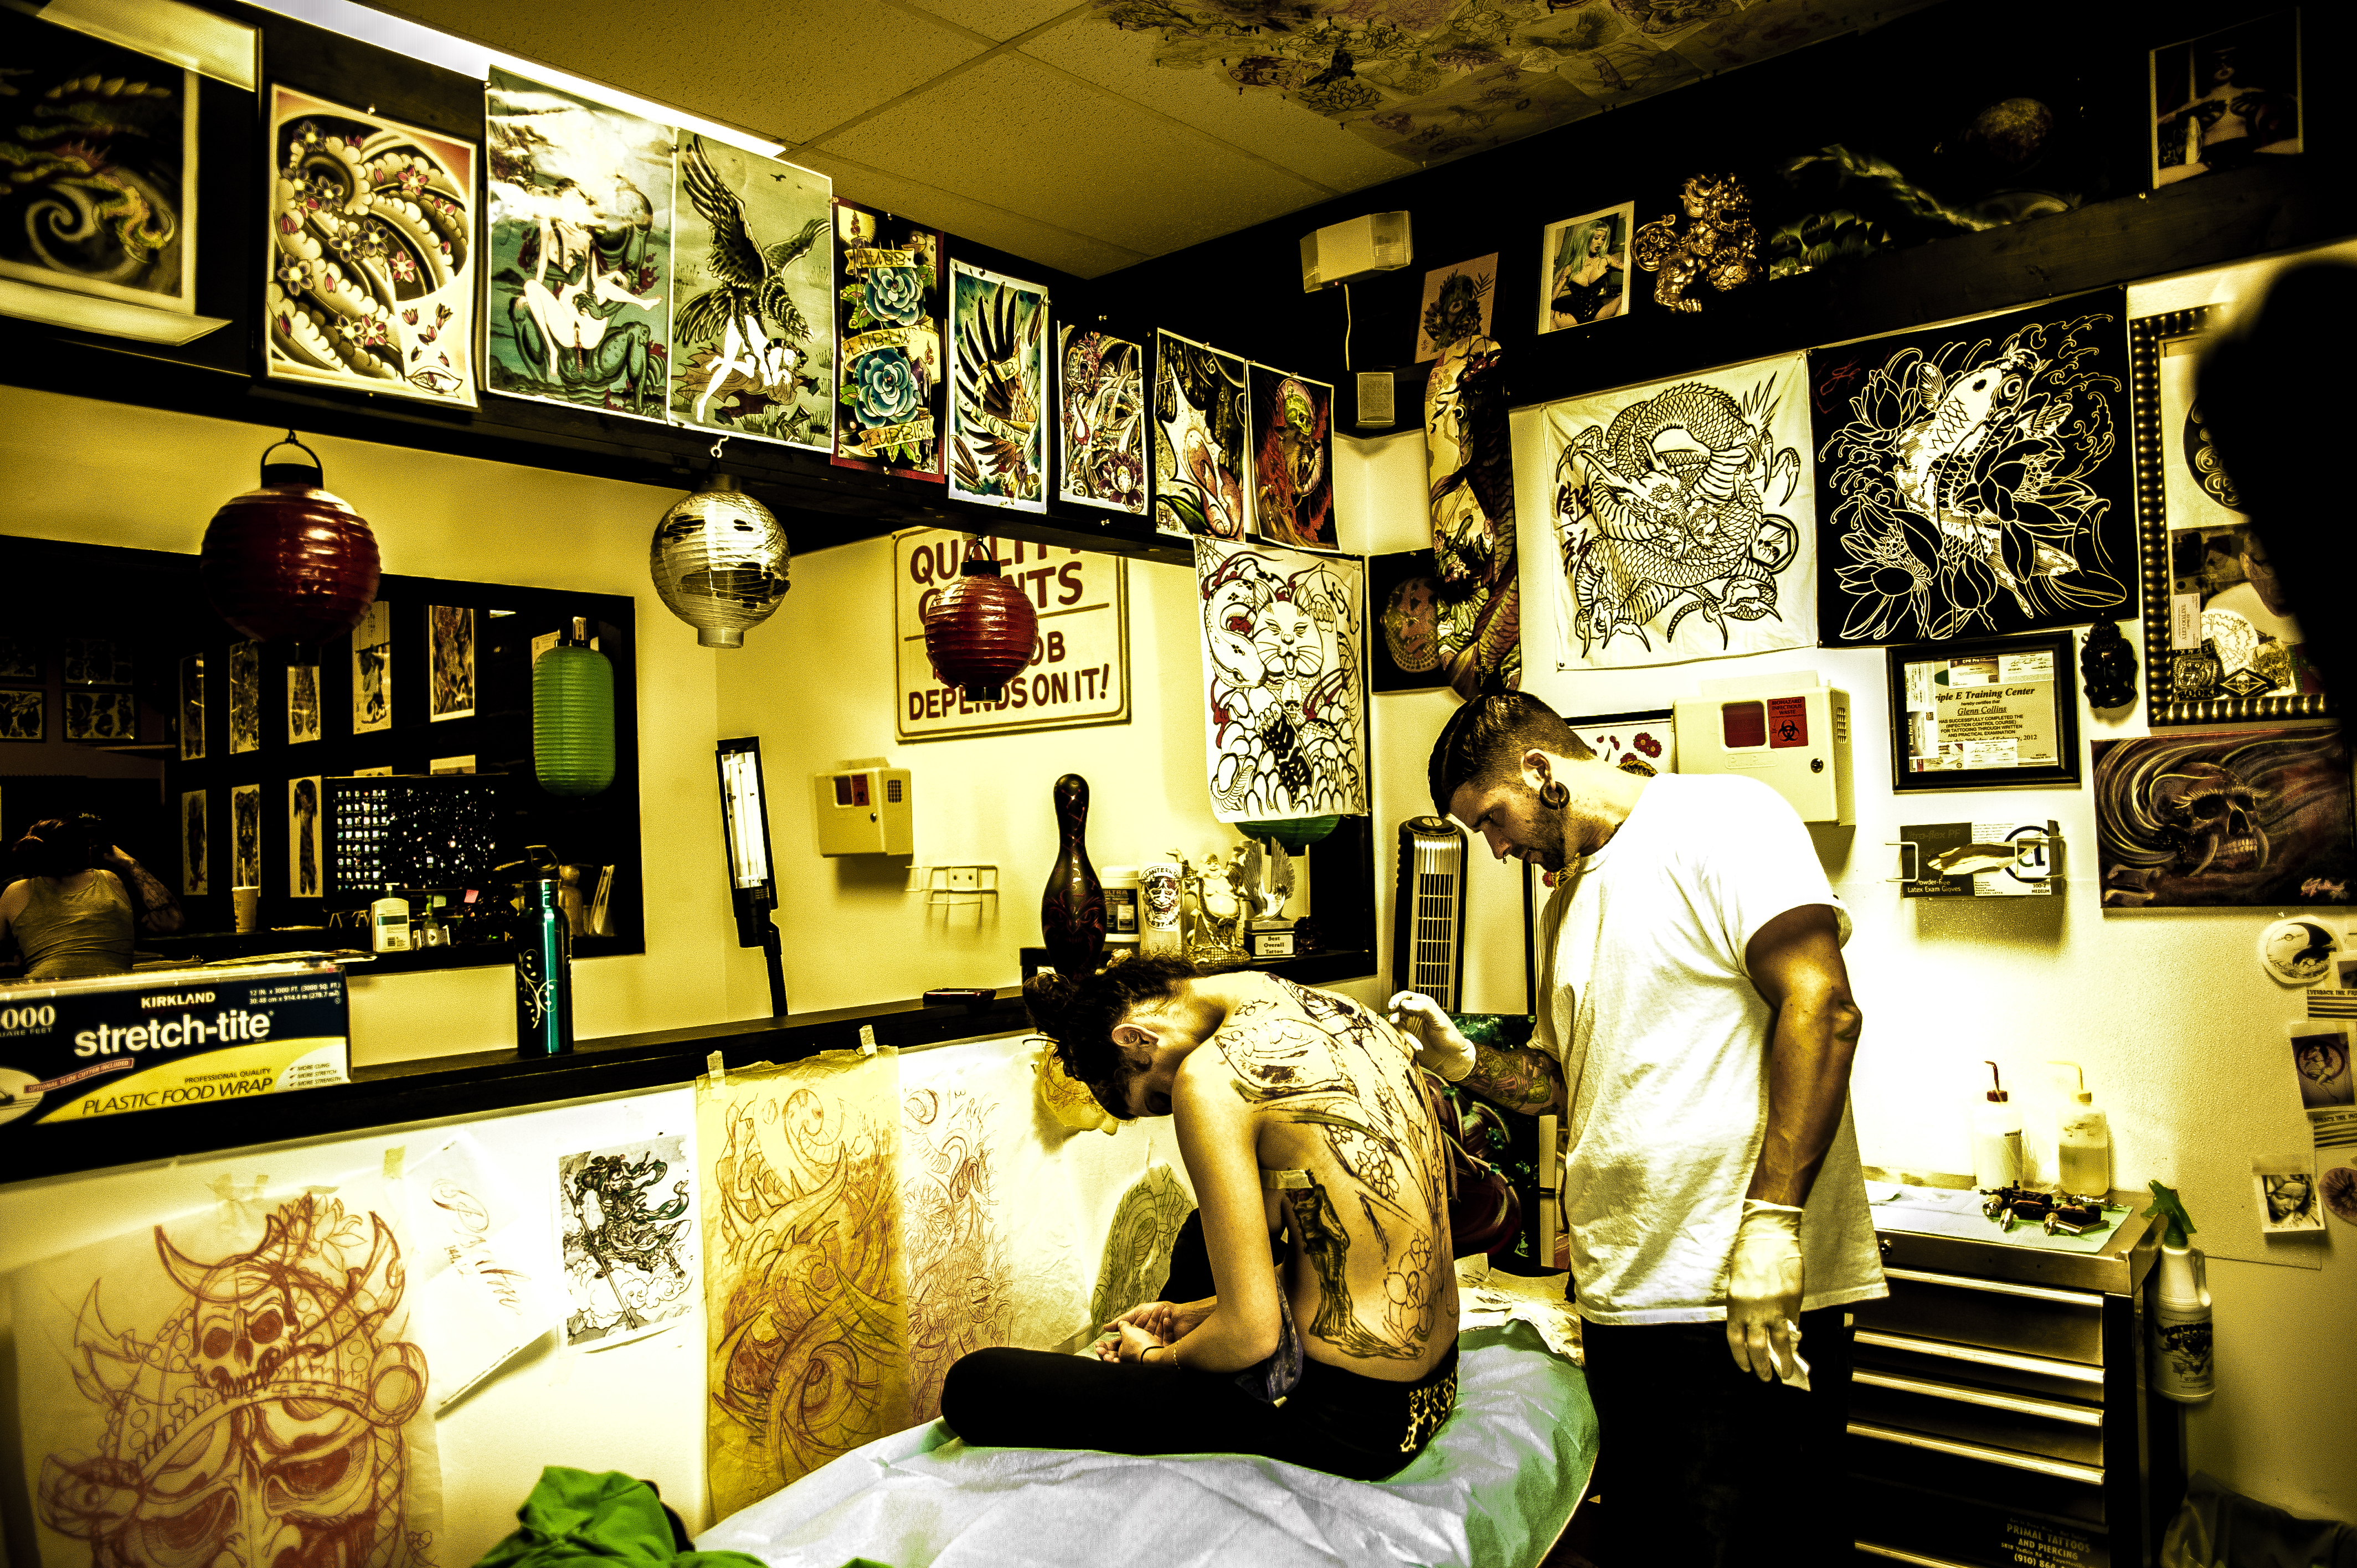 Tattoo environment! by dennissloan21